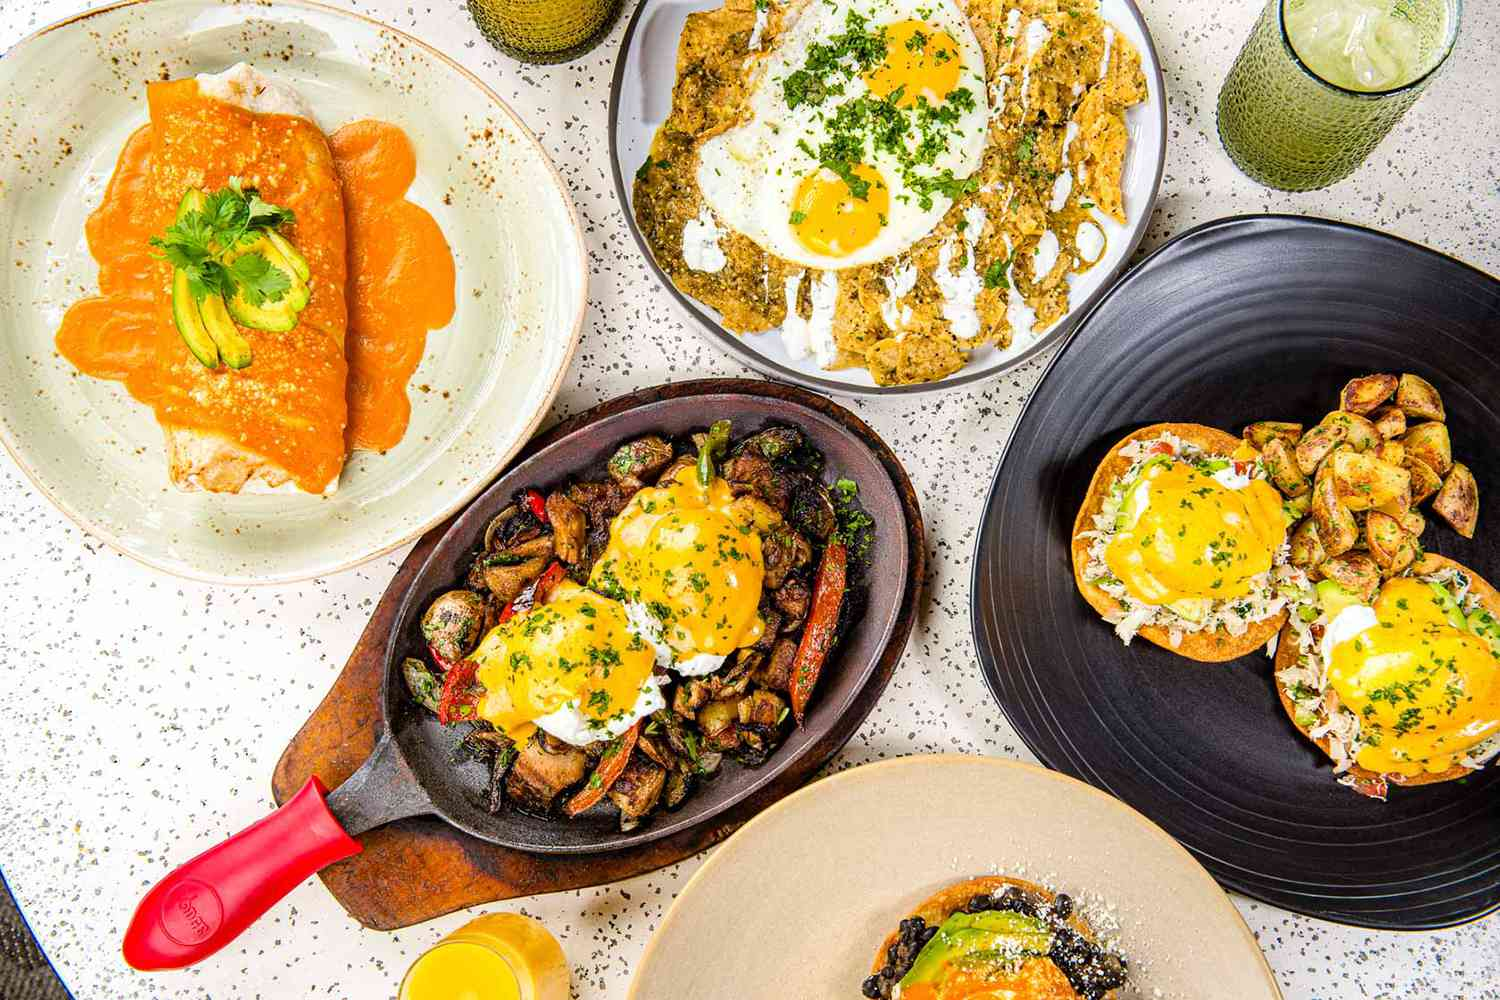 Food on plates at Lona Cocina & Tequileria